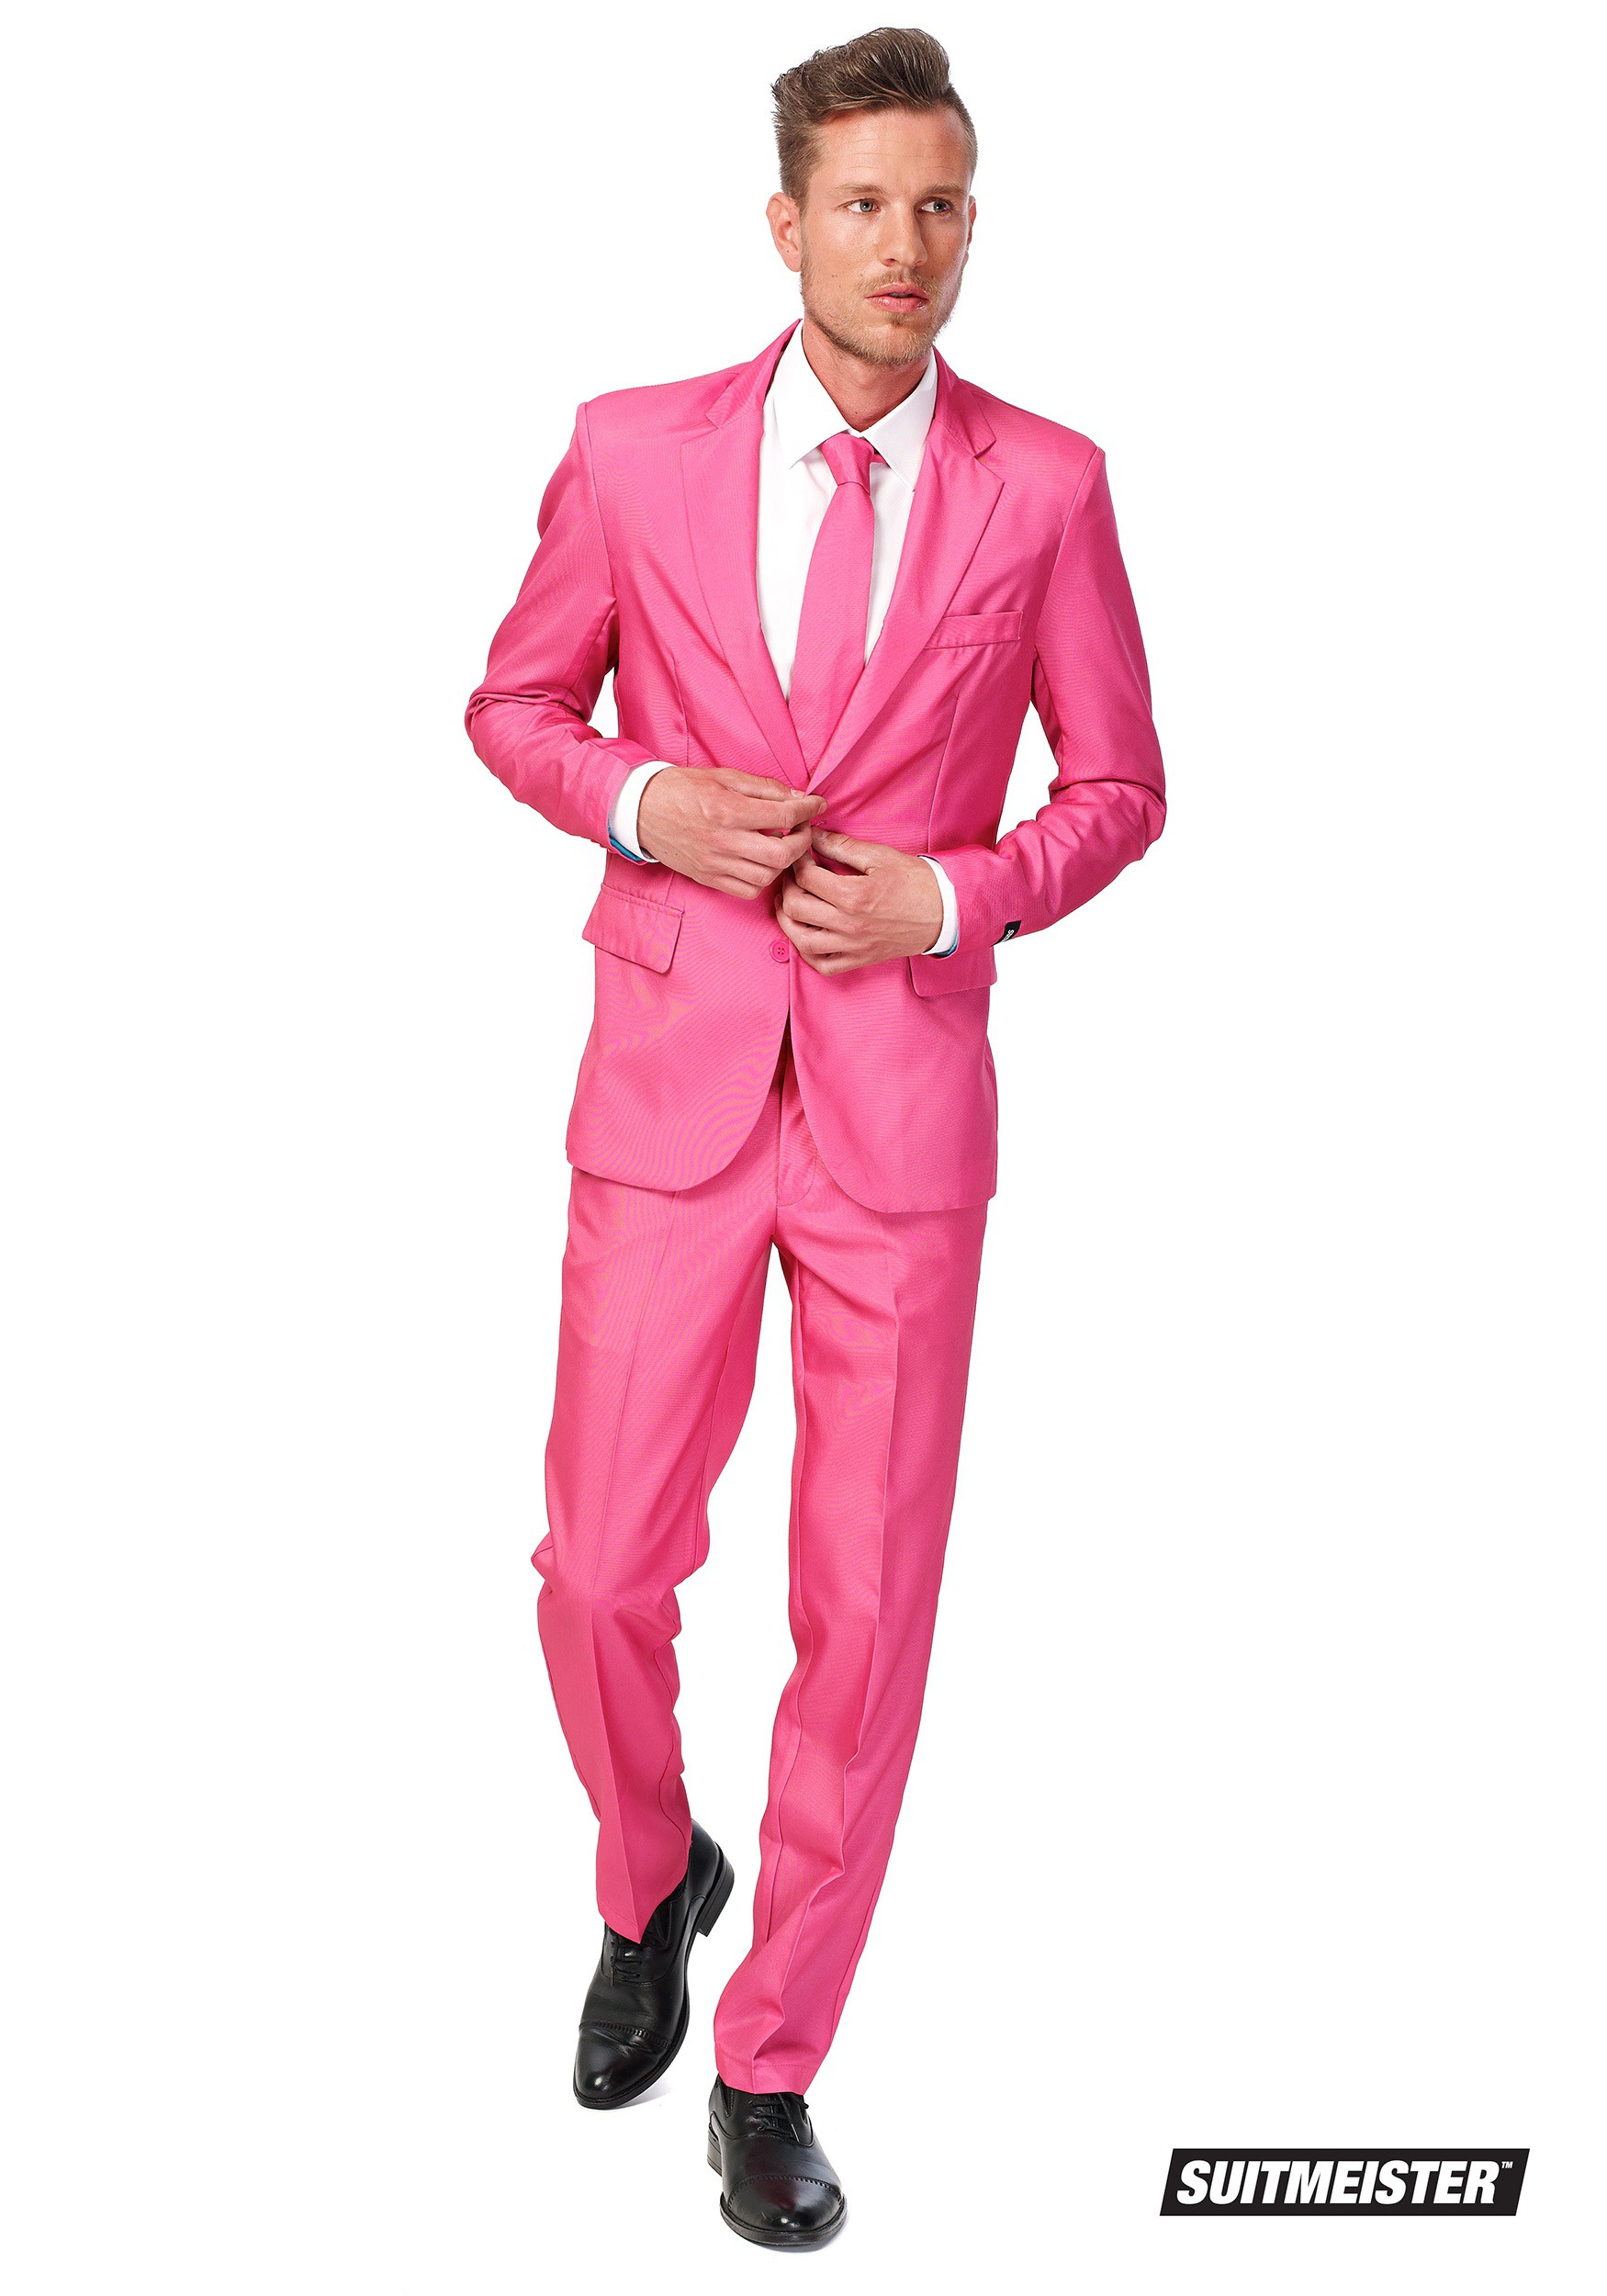 Mens SuitMeister Basic Pink Suit